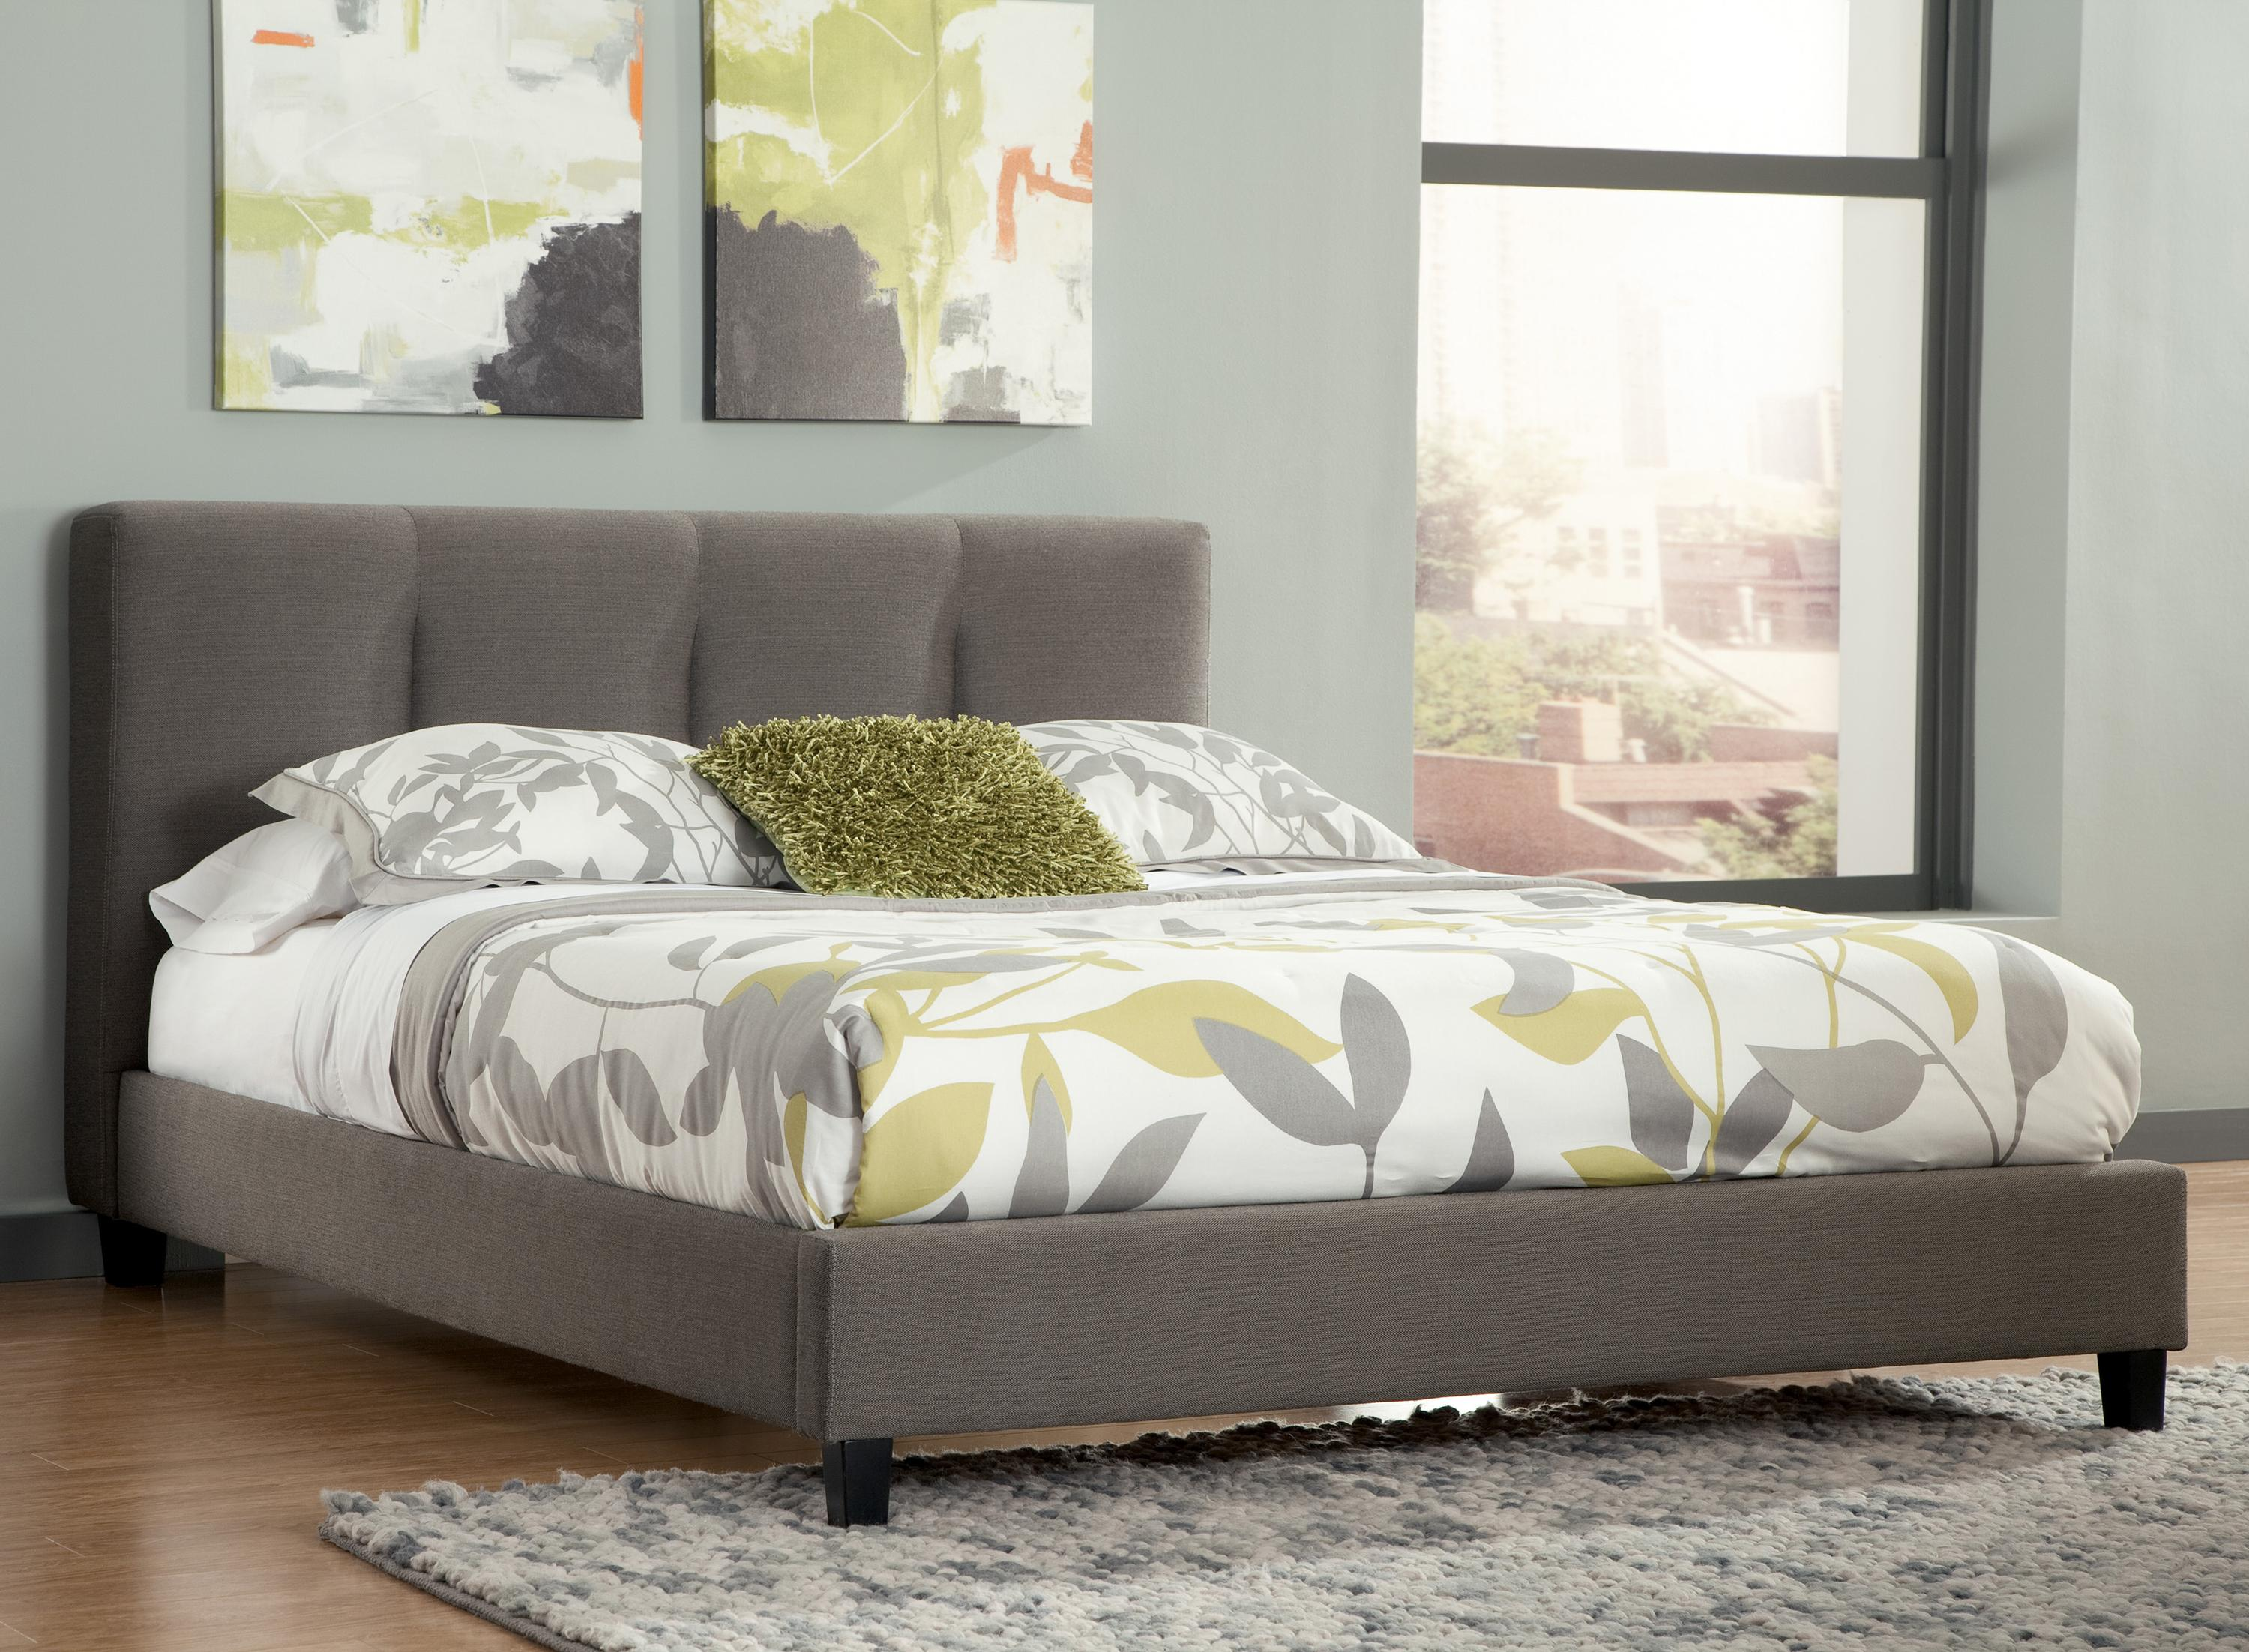 size bedroom full ashley and design collection headboards porter creative signature made furniture king calgary frames queen is where headboard upholstered sleigh